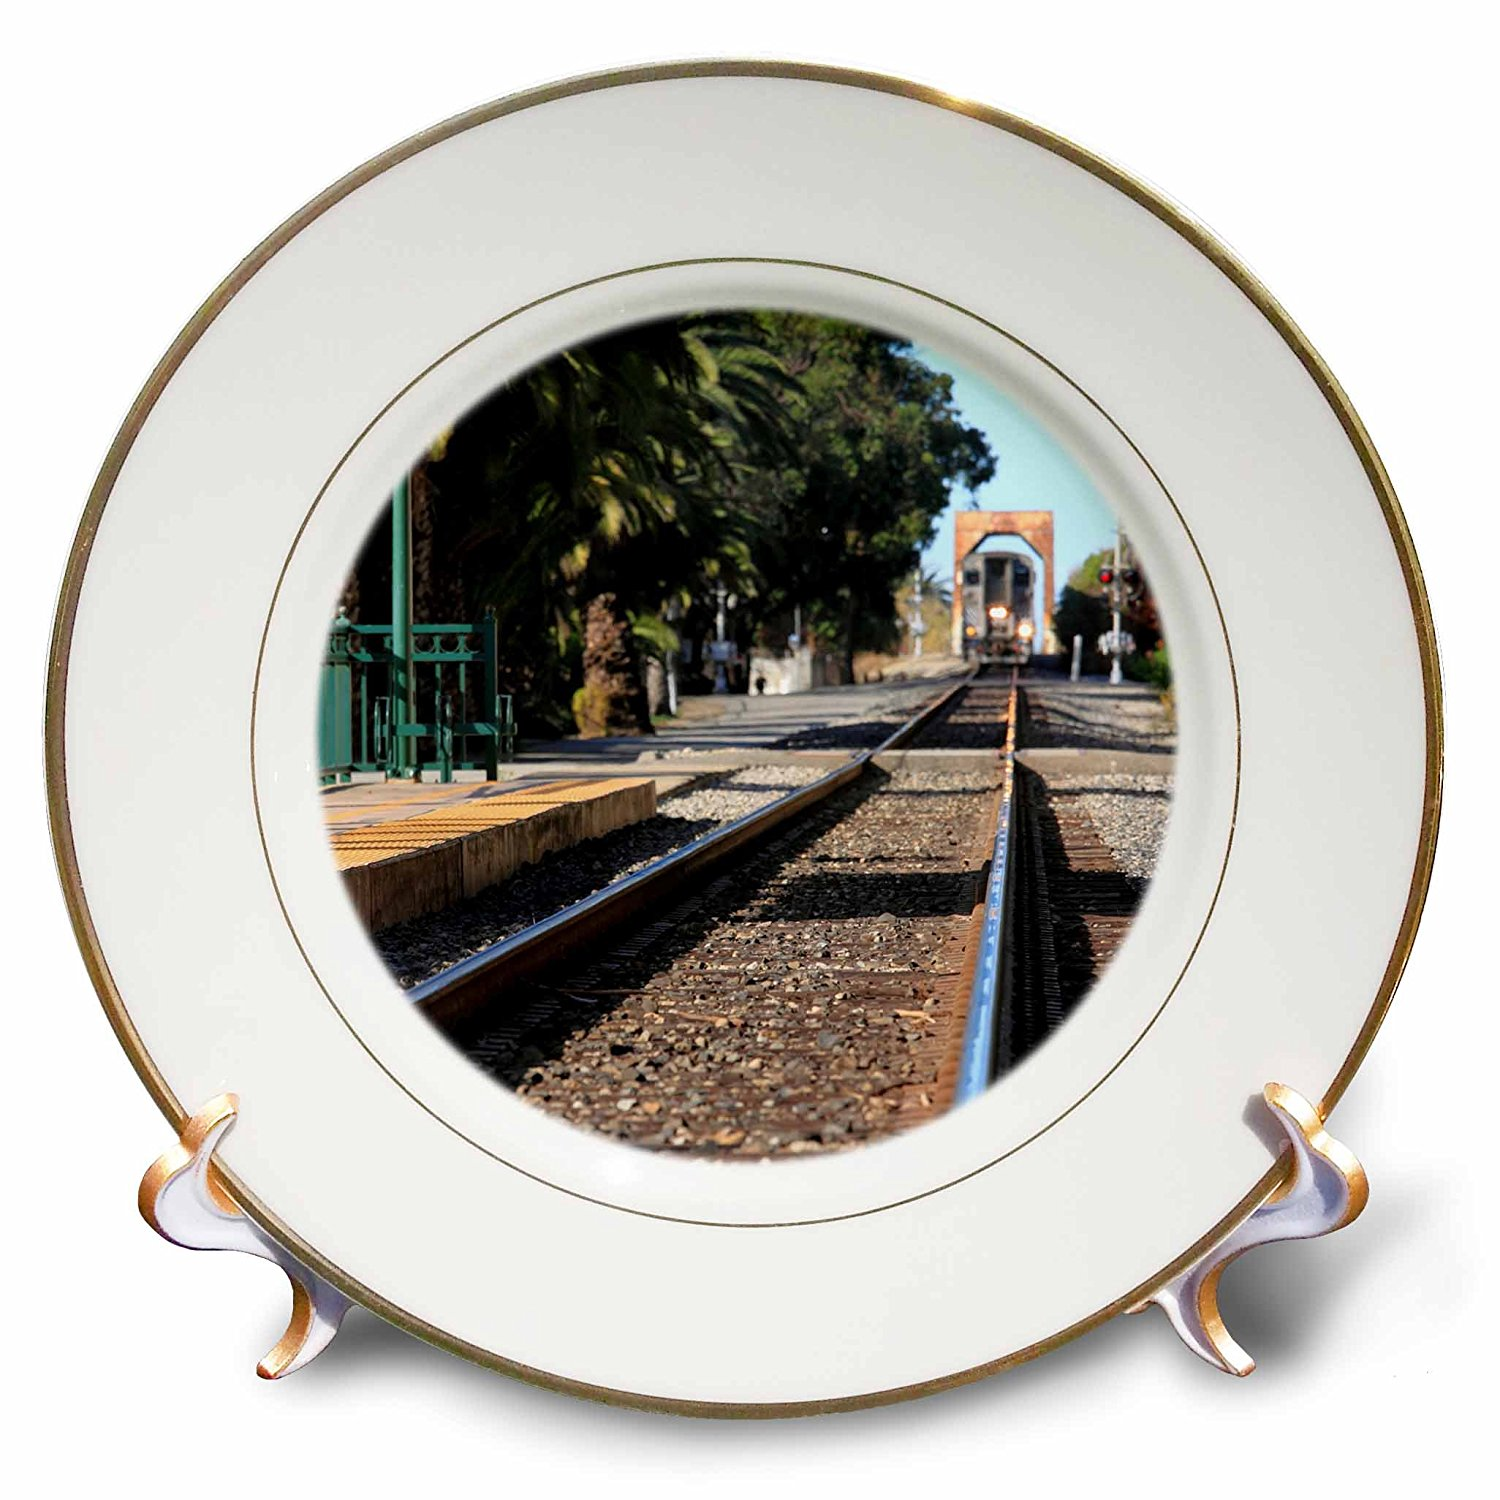 Henrik Lehnerer Designs - Transportation - Ventura Train Station California with a view of the tracks and train. - 8 inch Porcelain Plate (cp_240389_1)